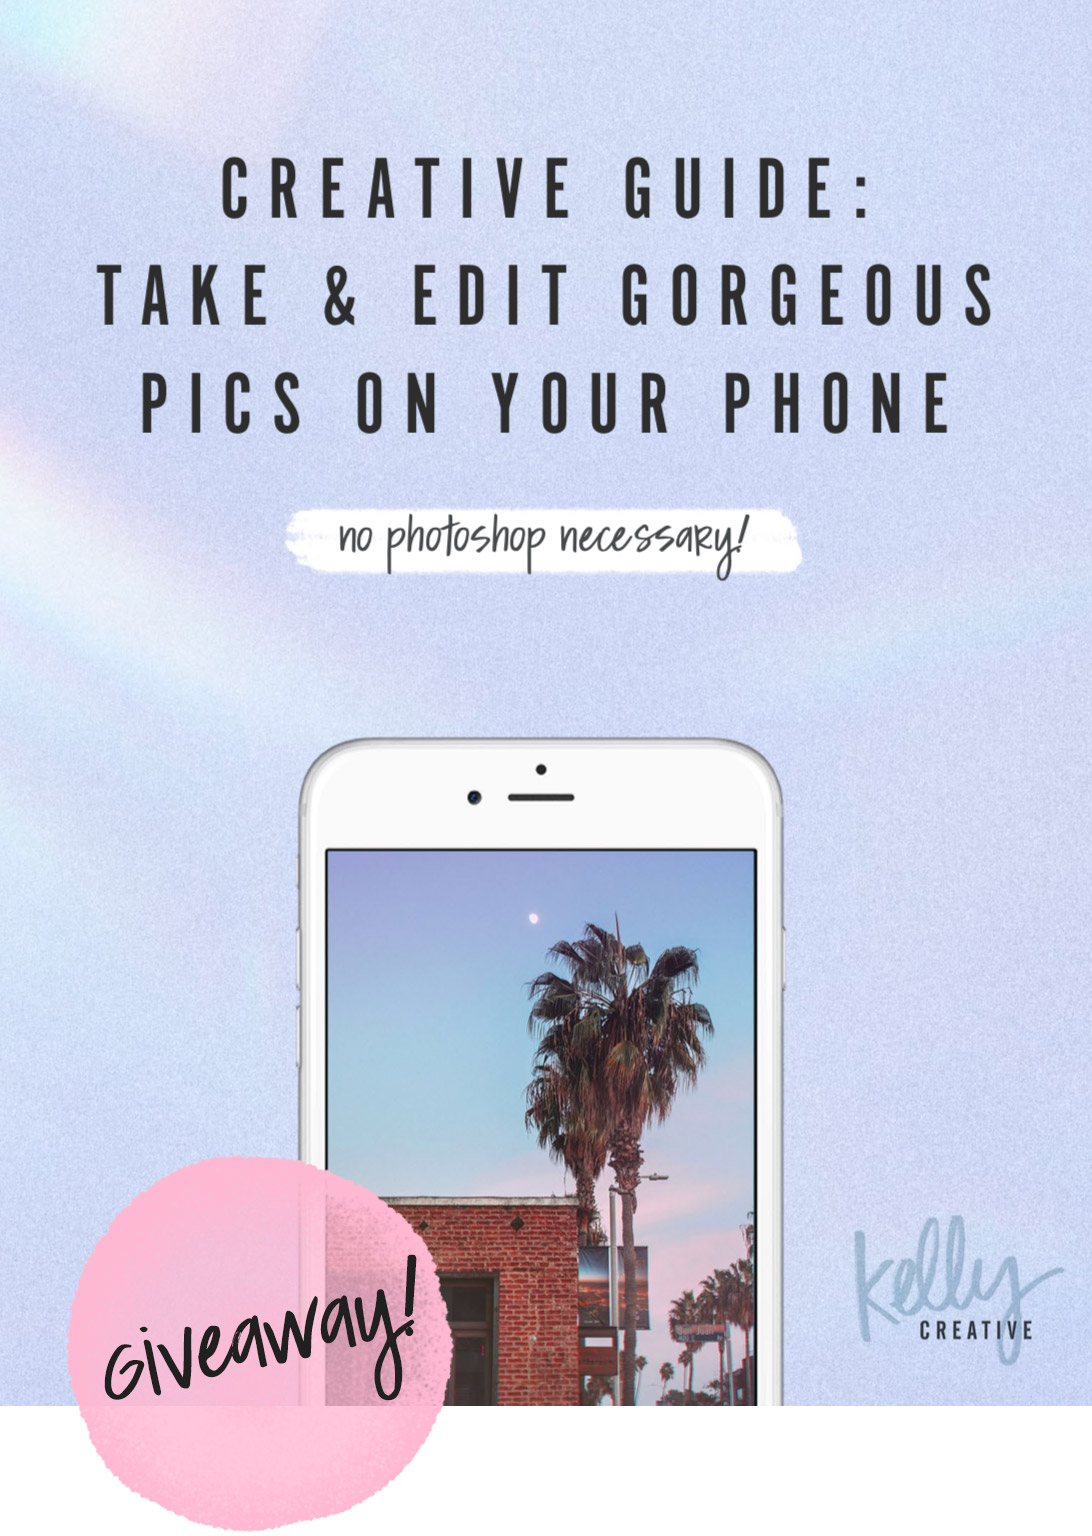 Photography Guide Giveaway! Take Gorgeous Pics on Your Phone